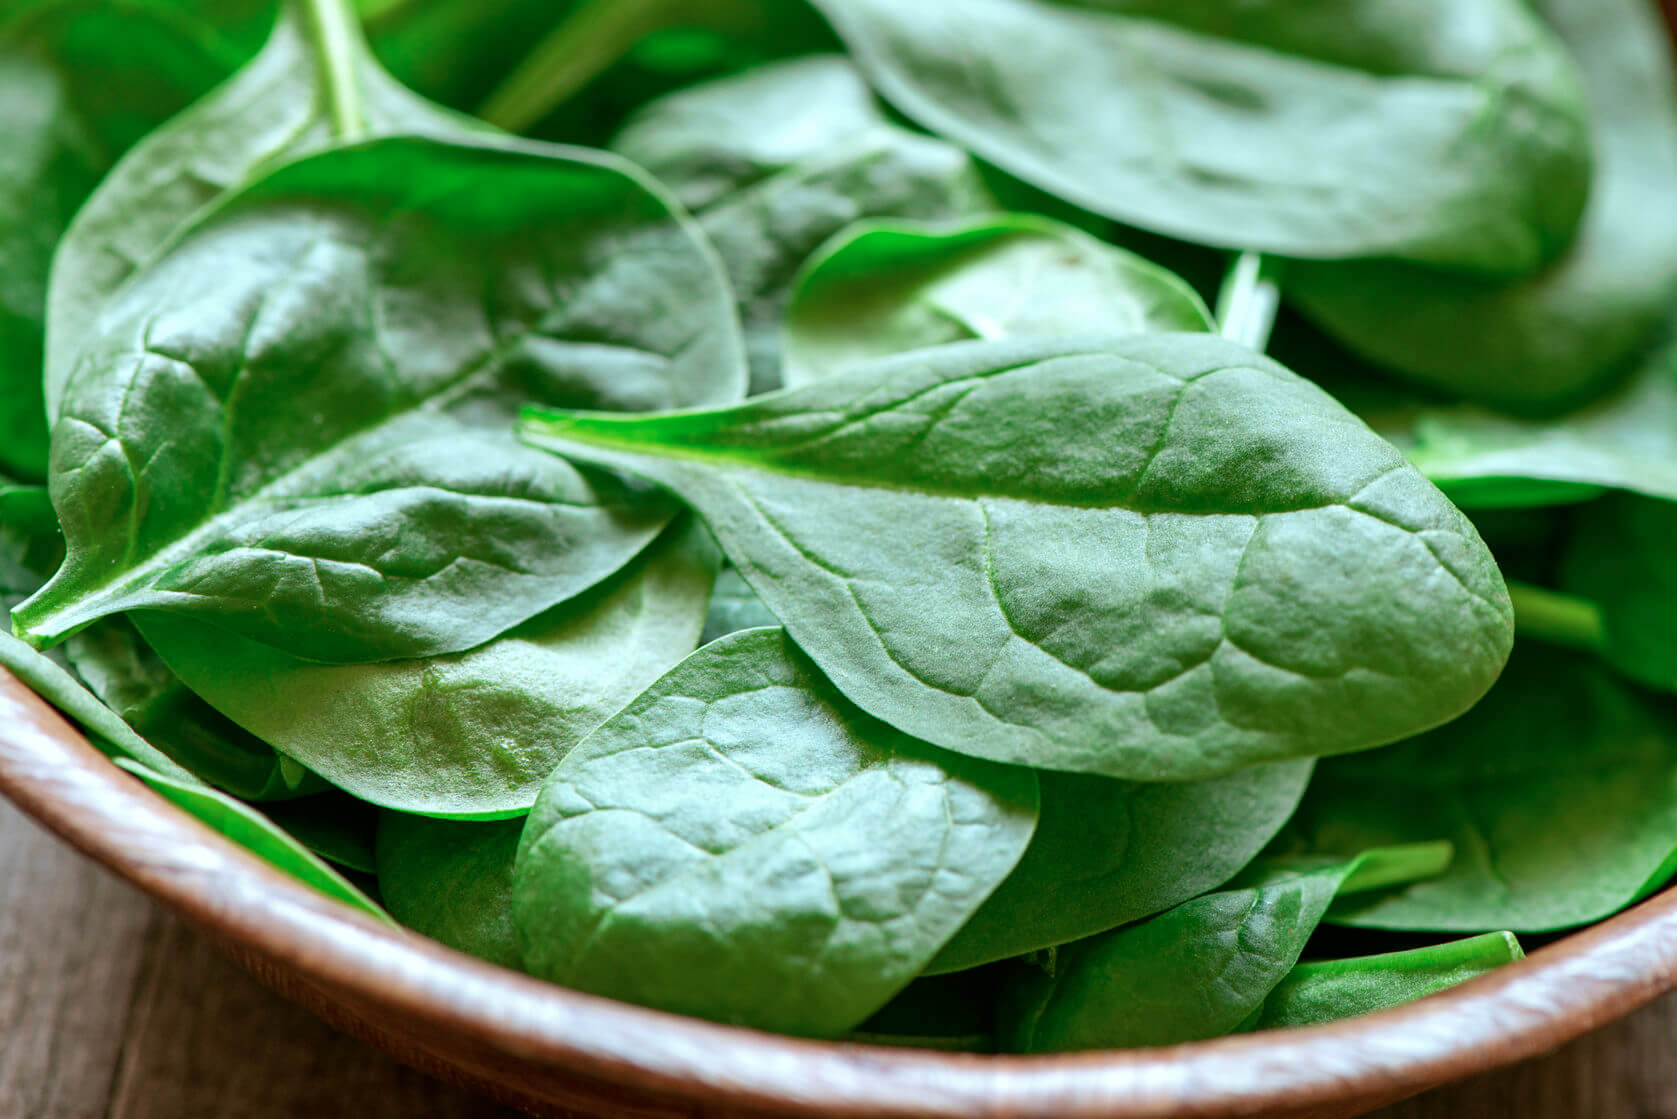 superfood plants | Gundry MD